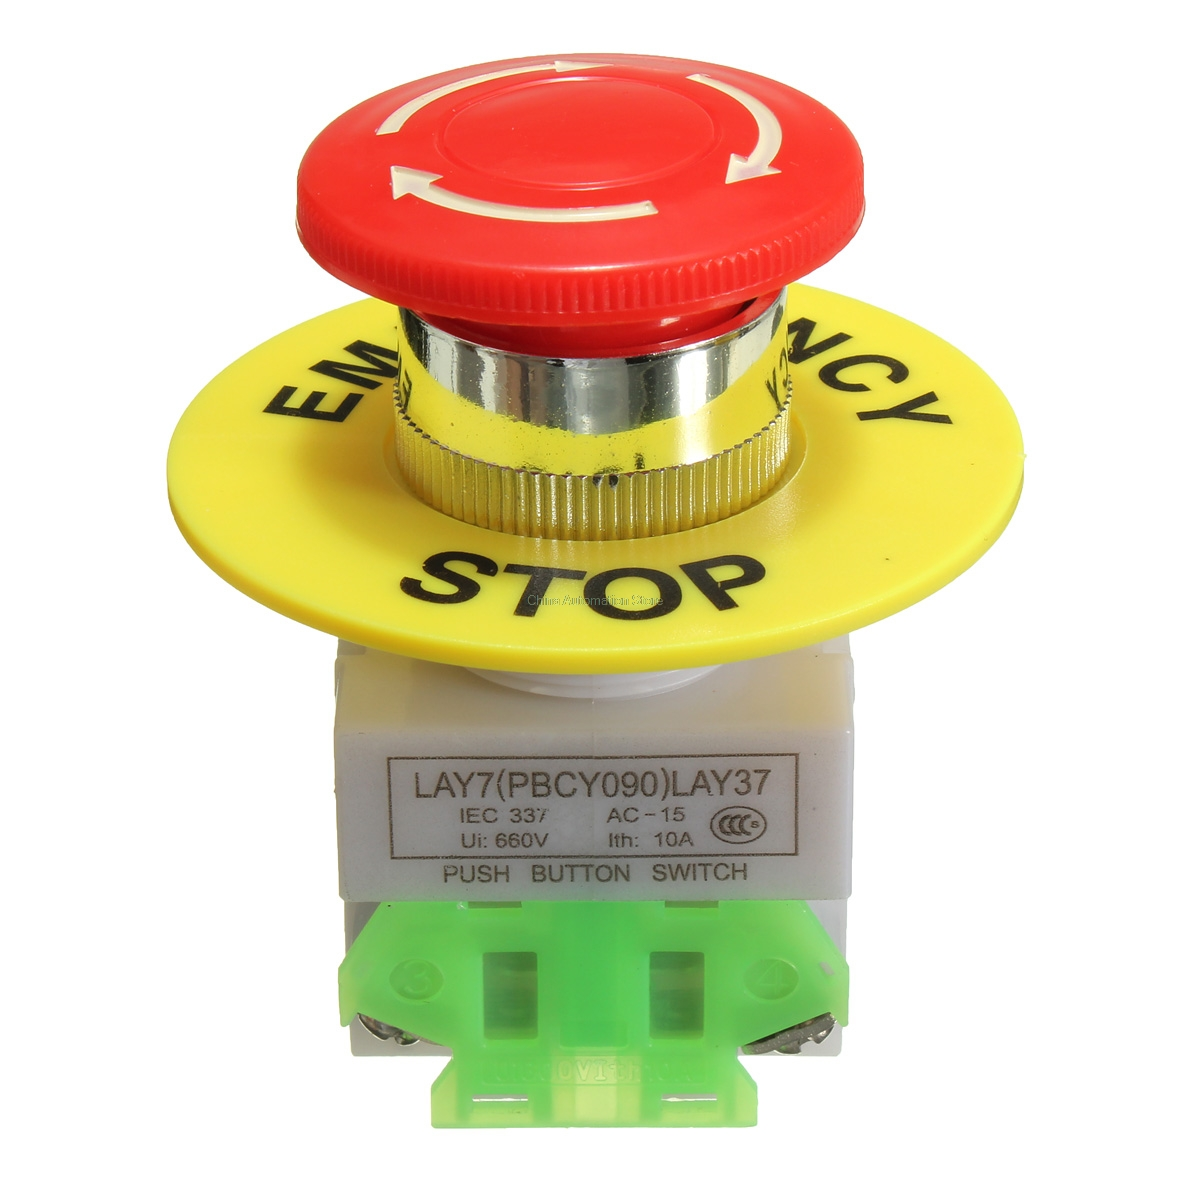 Dependable Red Mushroom Cap 1no 1nc Dpst Emergency Stop Push Button Switch Ac 660v 10a Switch Equipment Lift Elevator Latching Self Lock Lighting Accessories Engagement & Wedding